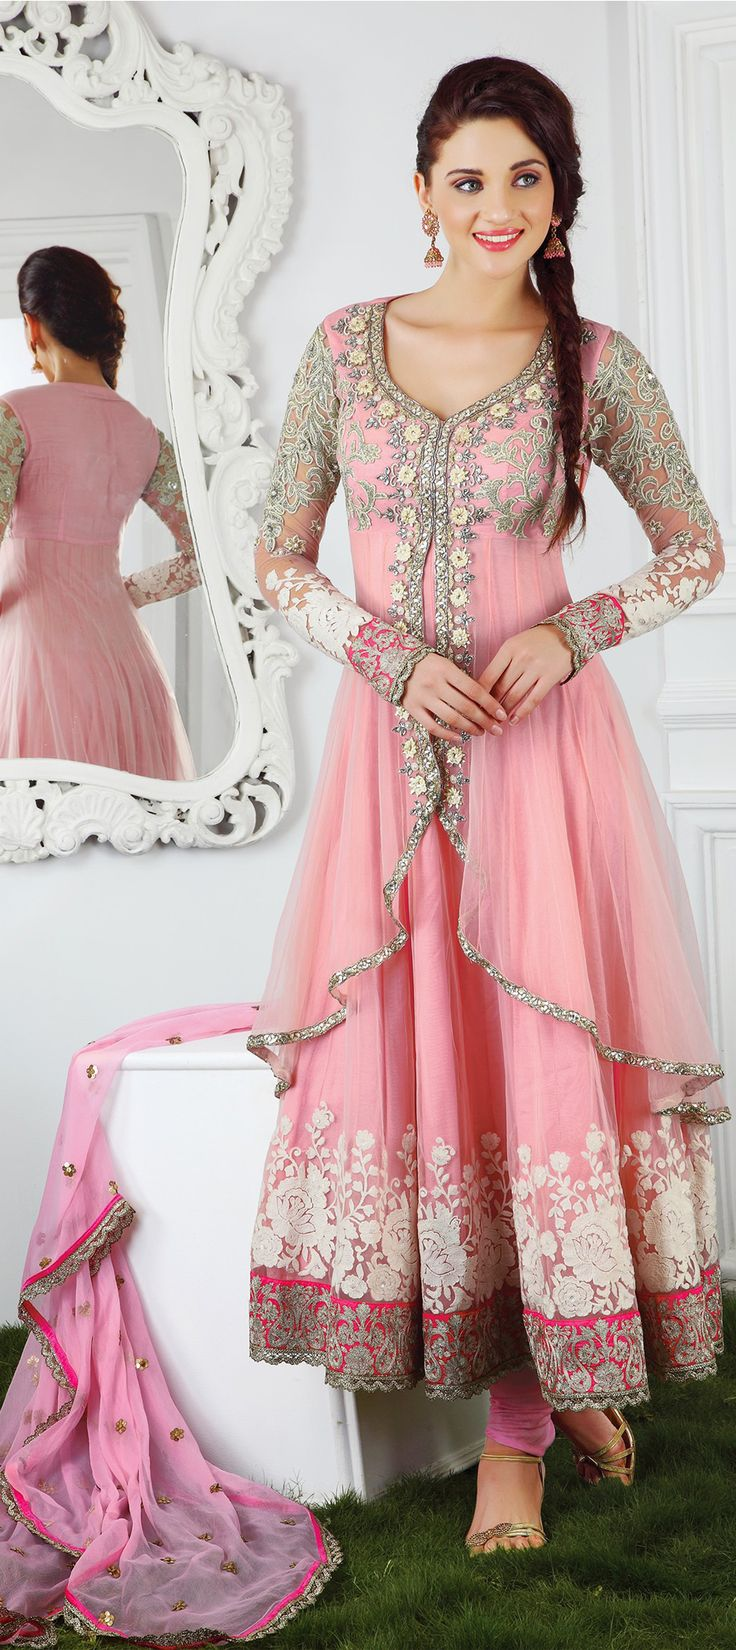 8,400 Cost includes Dress material for Kameez, Bottom & Dupatta. Worldwide Shipping is FREE (Guaranteed 2 Business days dispatch) Tentative Delivery By 12 Feb, 2015  400229: Pink and Majenta color family unstitched Party Wear Salwar Kameez.